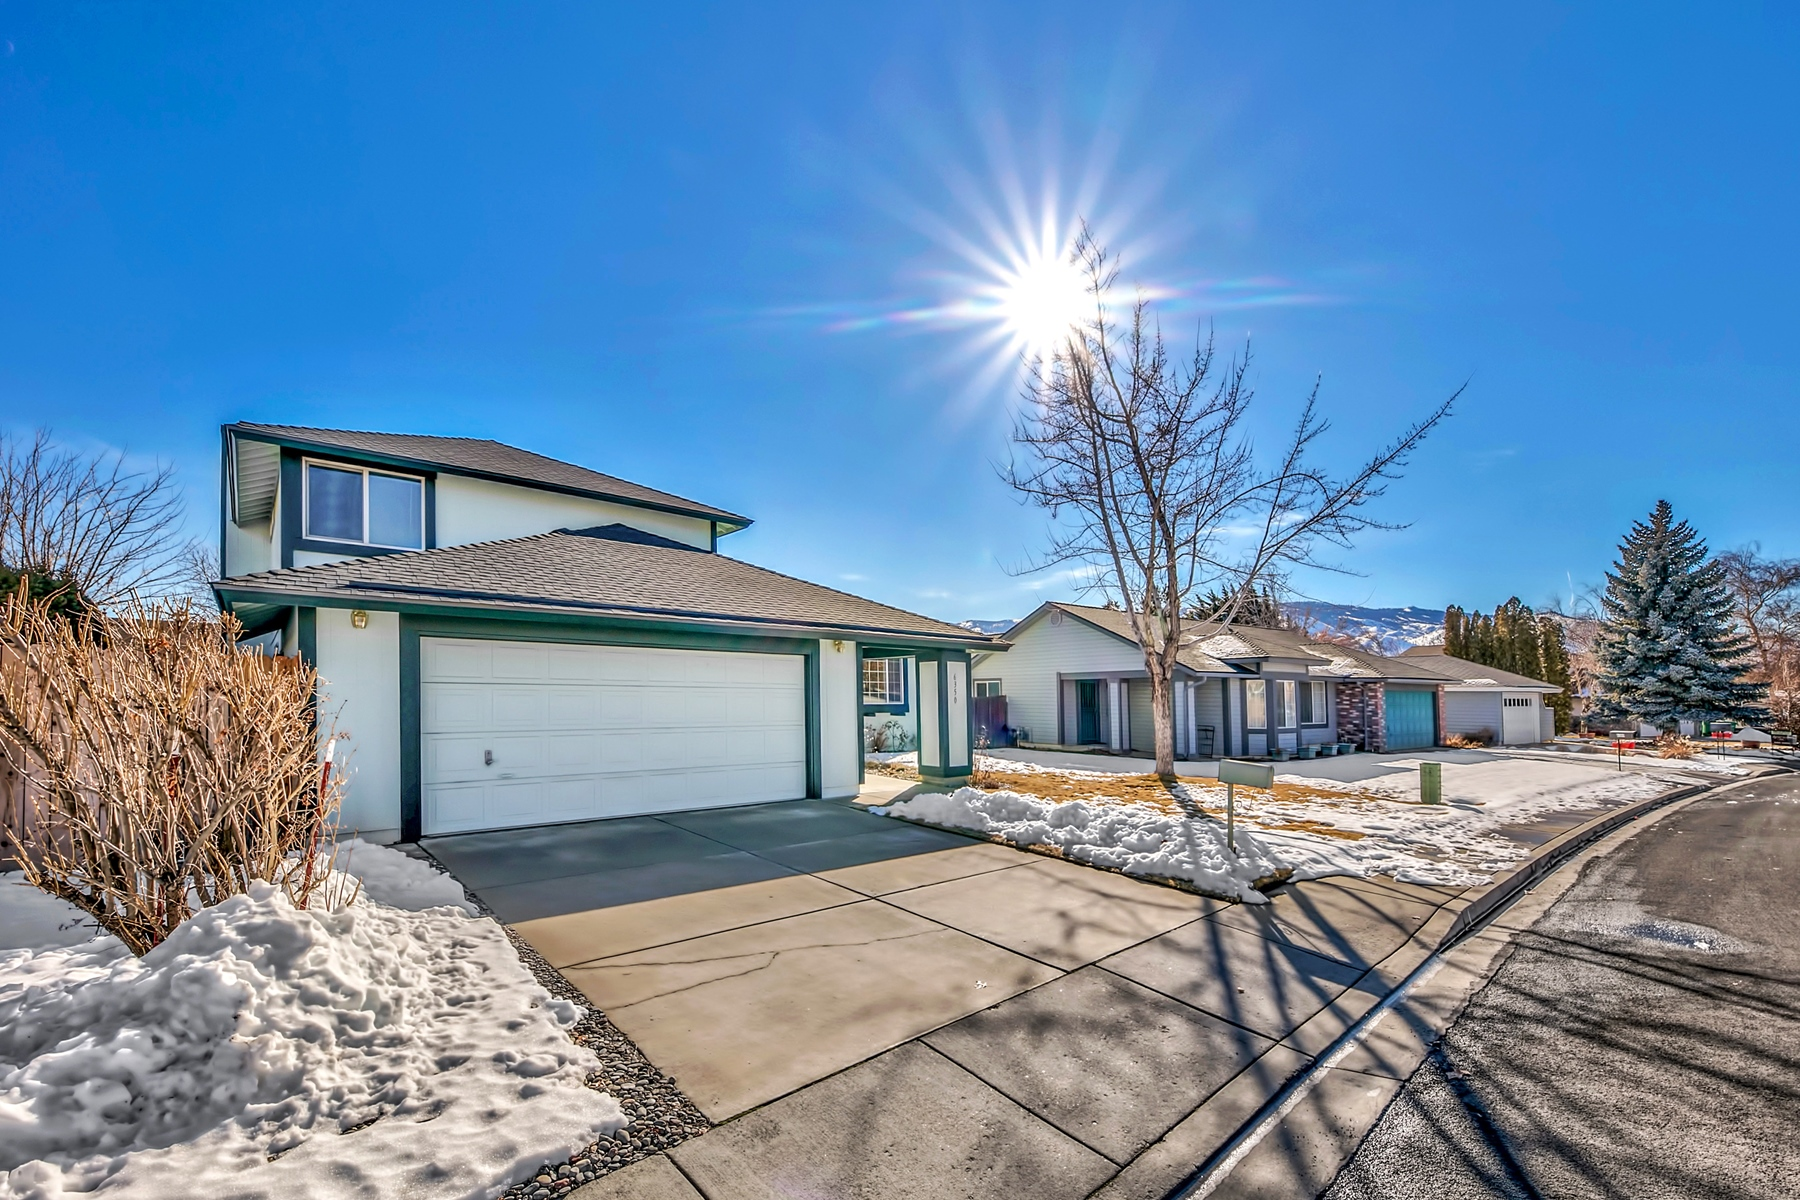 Single Family Home for Active at 6350 Fairhaven Place, Reno, Nevada 89523 6350 Fairhaven Place Reno, Nevada 89523 United States